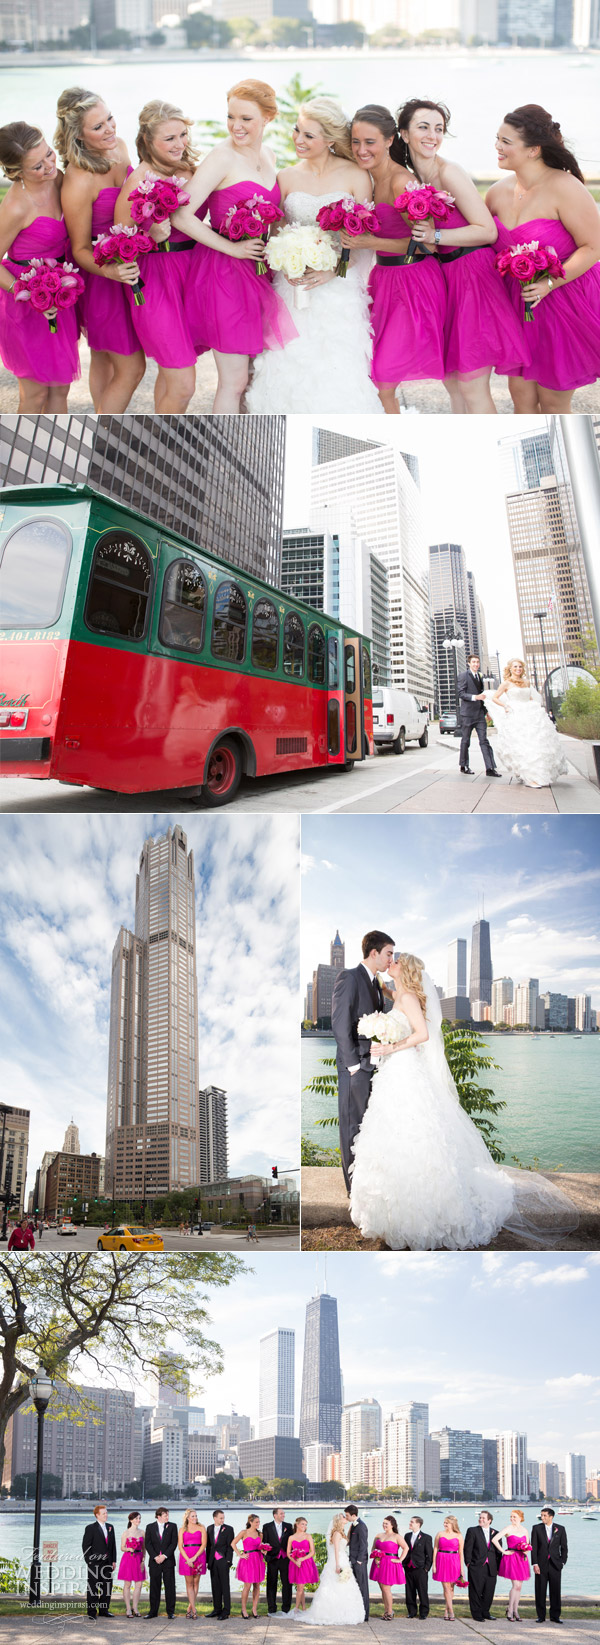 Chic city wedding in downtown chicago wedding inspirasi